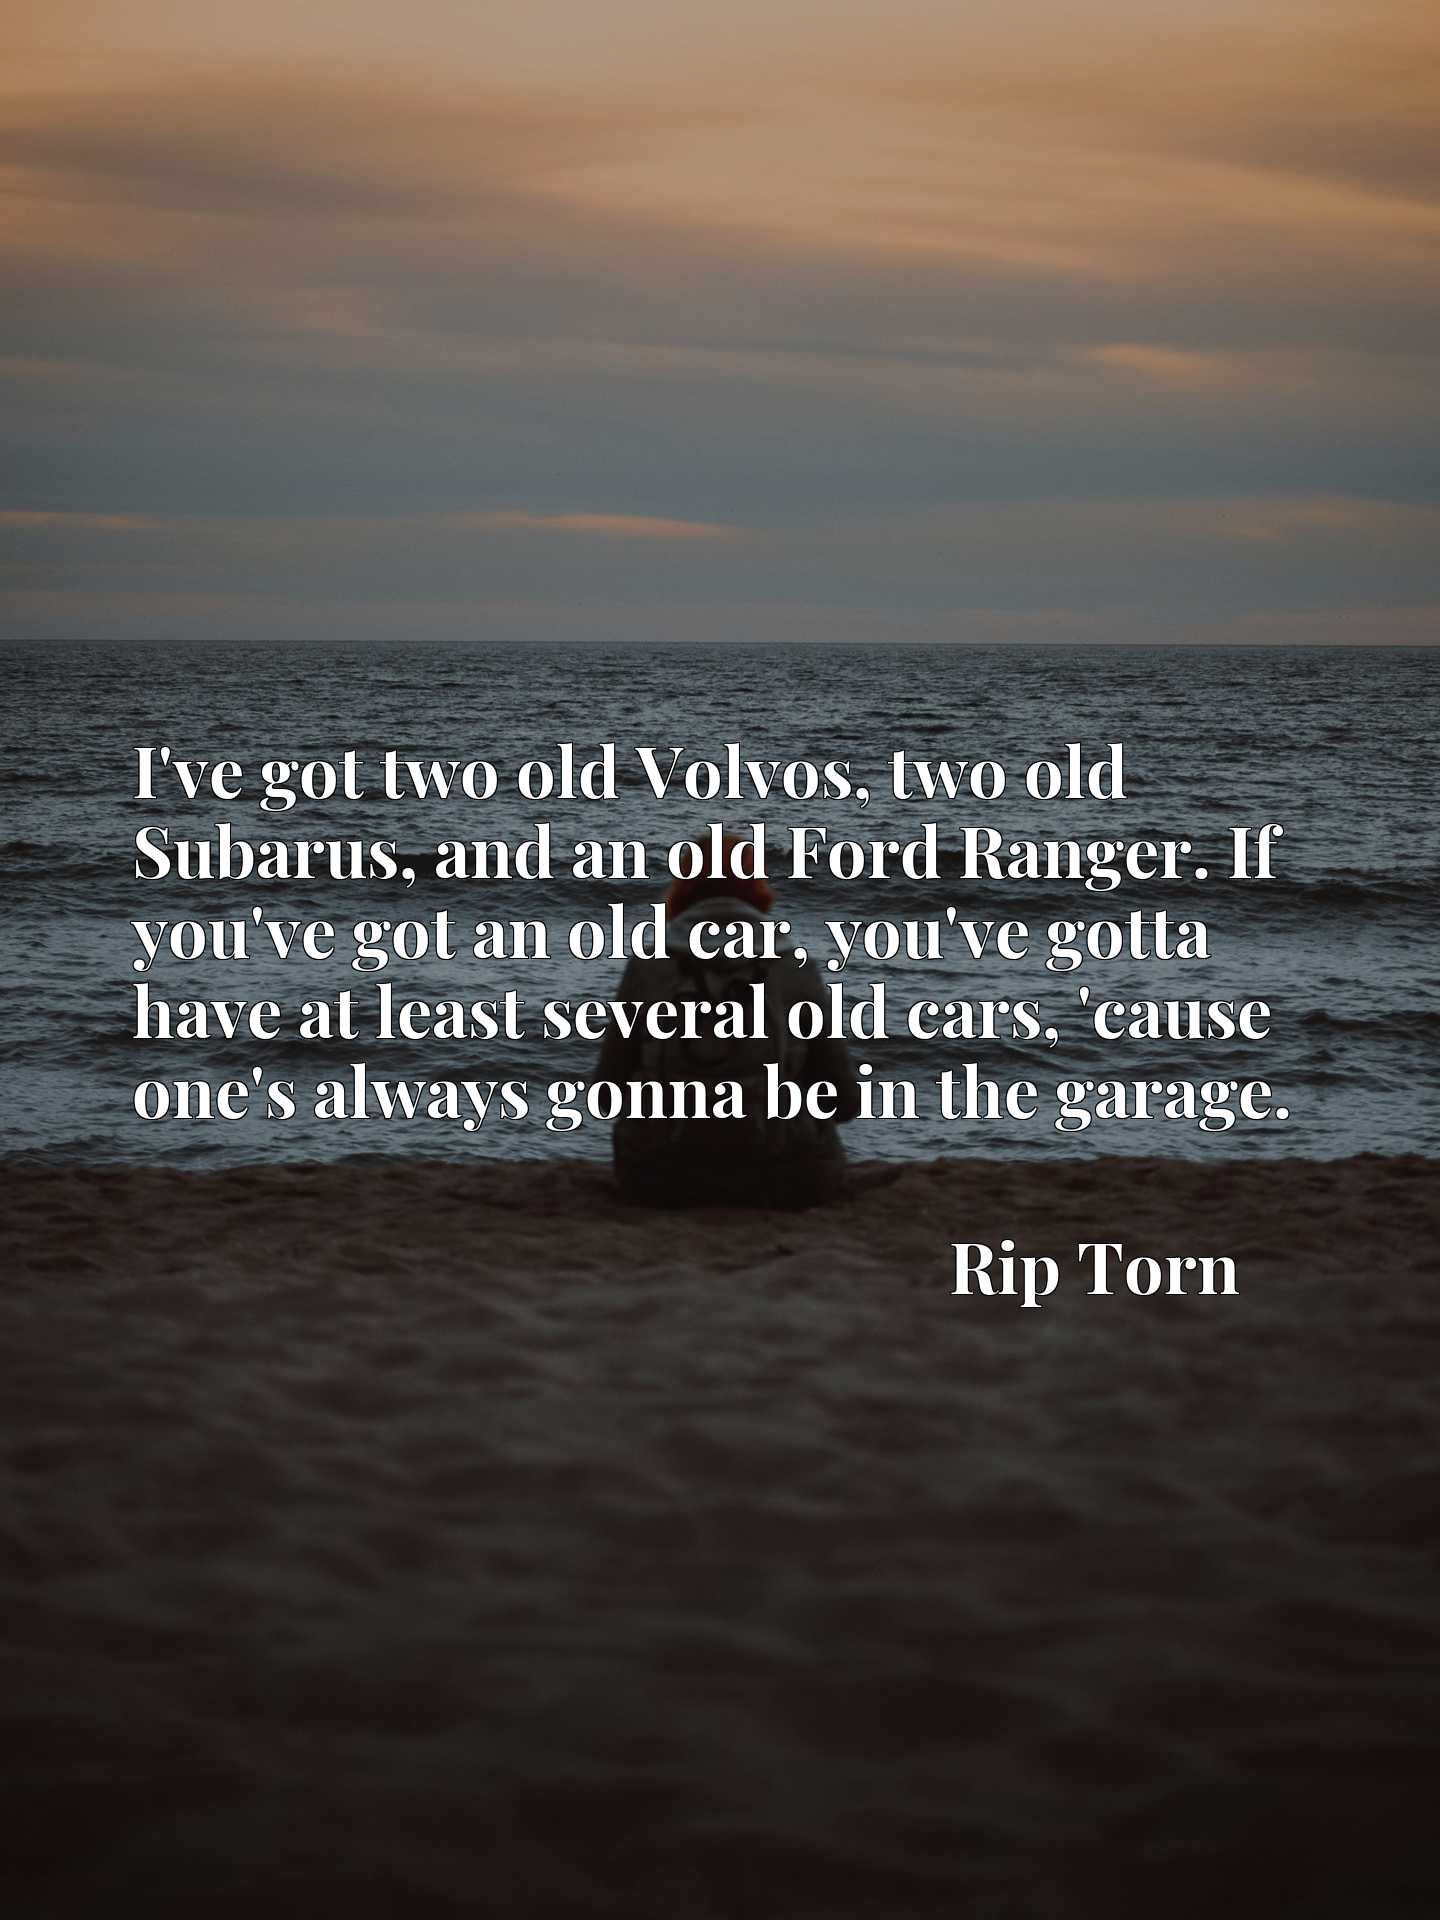 I've got two old Volvos, two old Subarus, and an old Ford Ranger. If you've got an old car, you've gotta have at least several old cars, 'cause one's always gonna be in the garage.